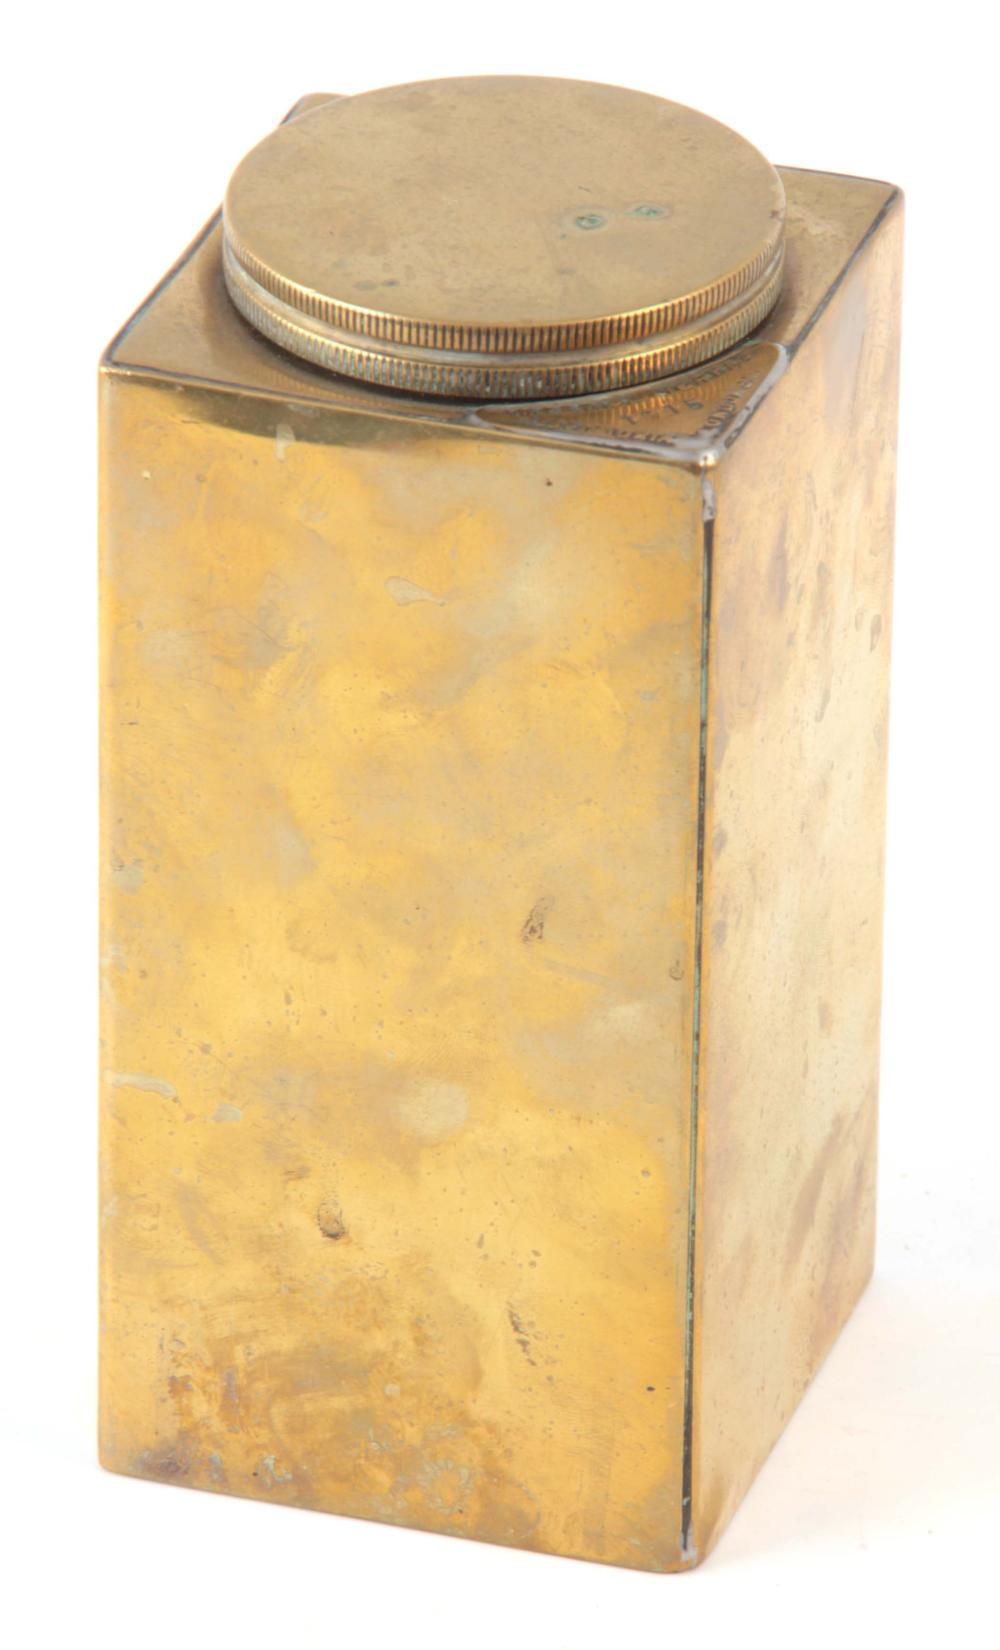 A BRASS OIL CONTAINER WITH NAME BADGE STAMPED 'IMP